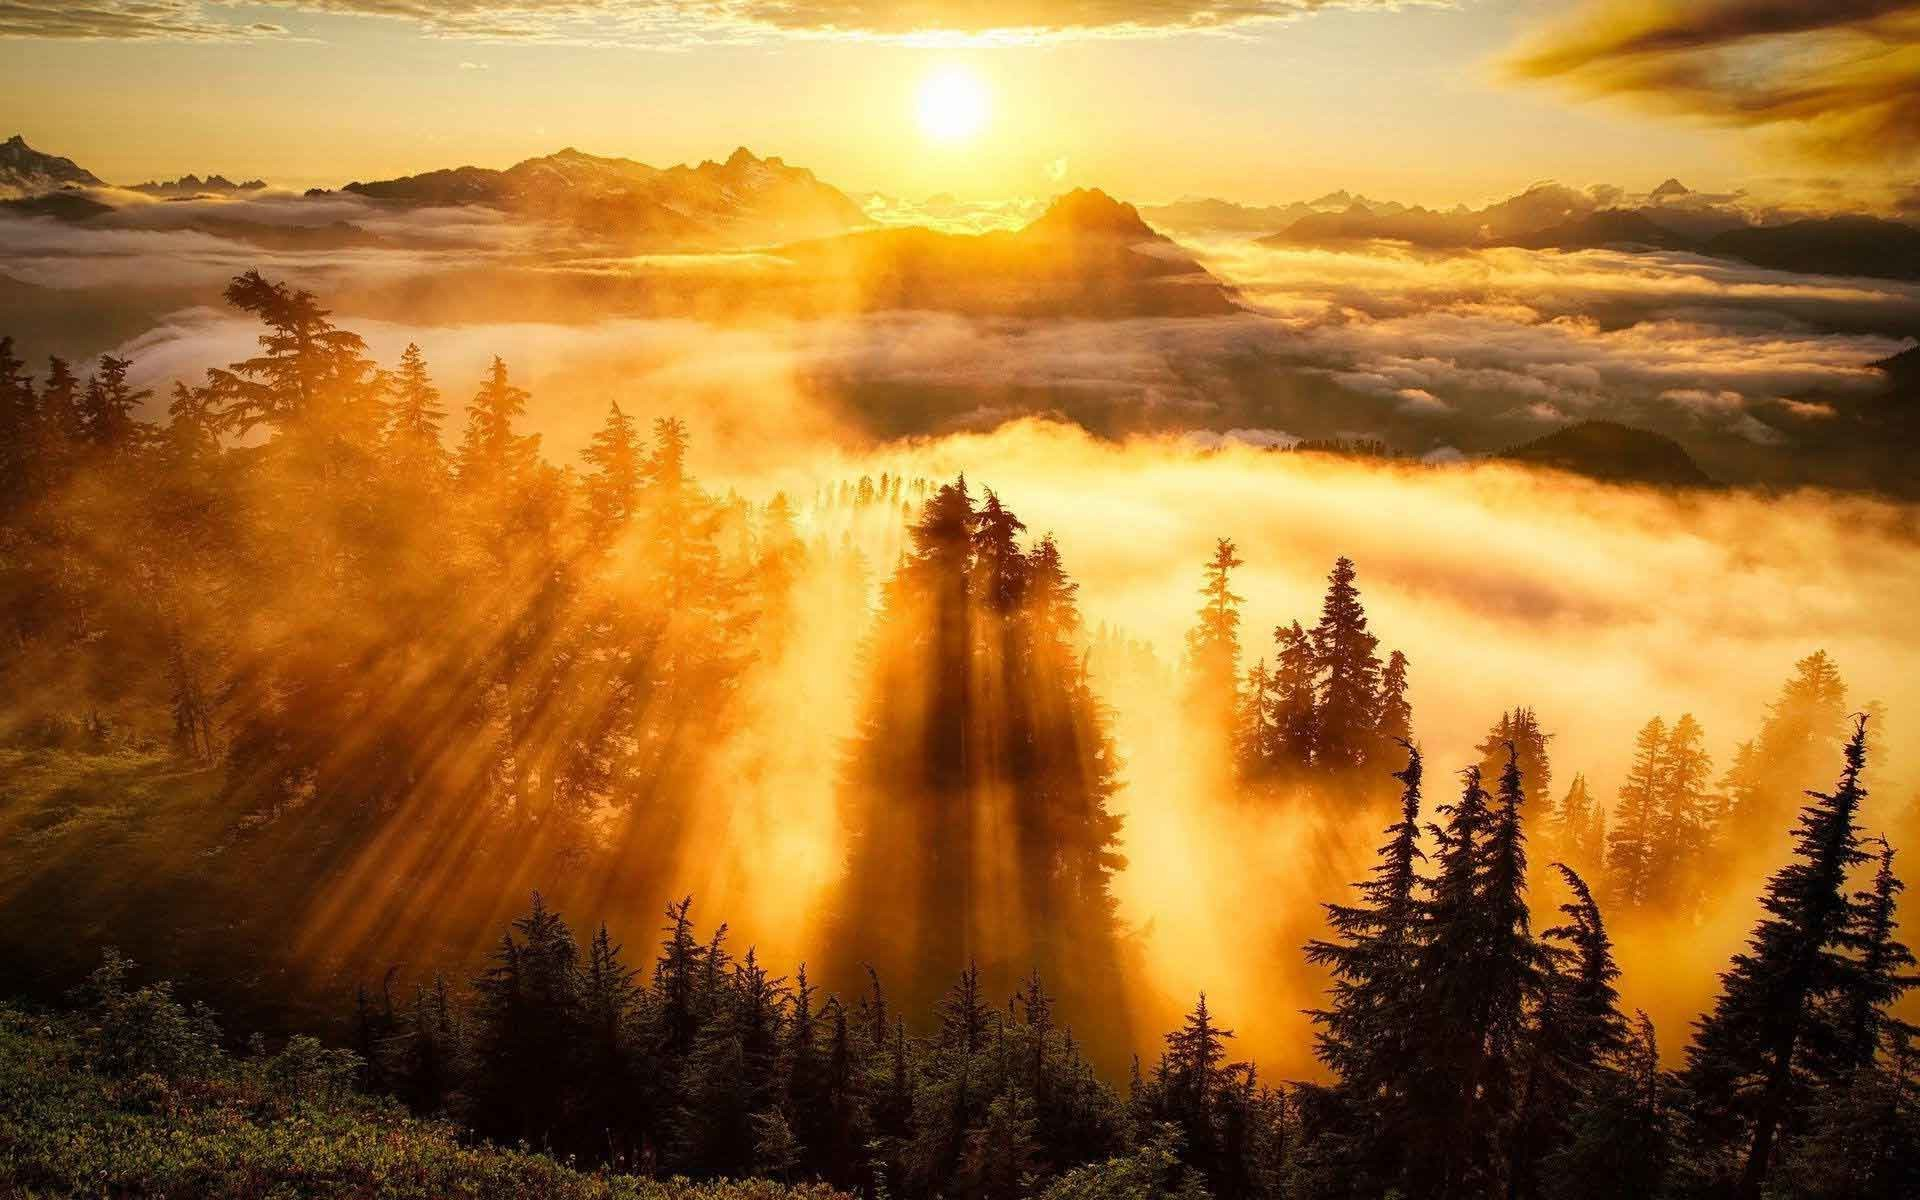 Sunrise Sunset Landscape Trees Autumn Forest Nature Tree HD Wallpapers 1080p  Widescreen Download